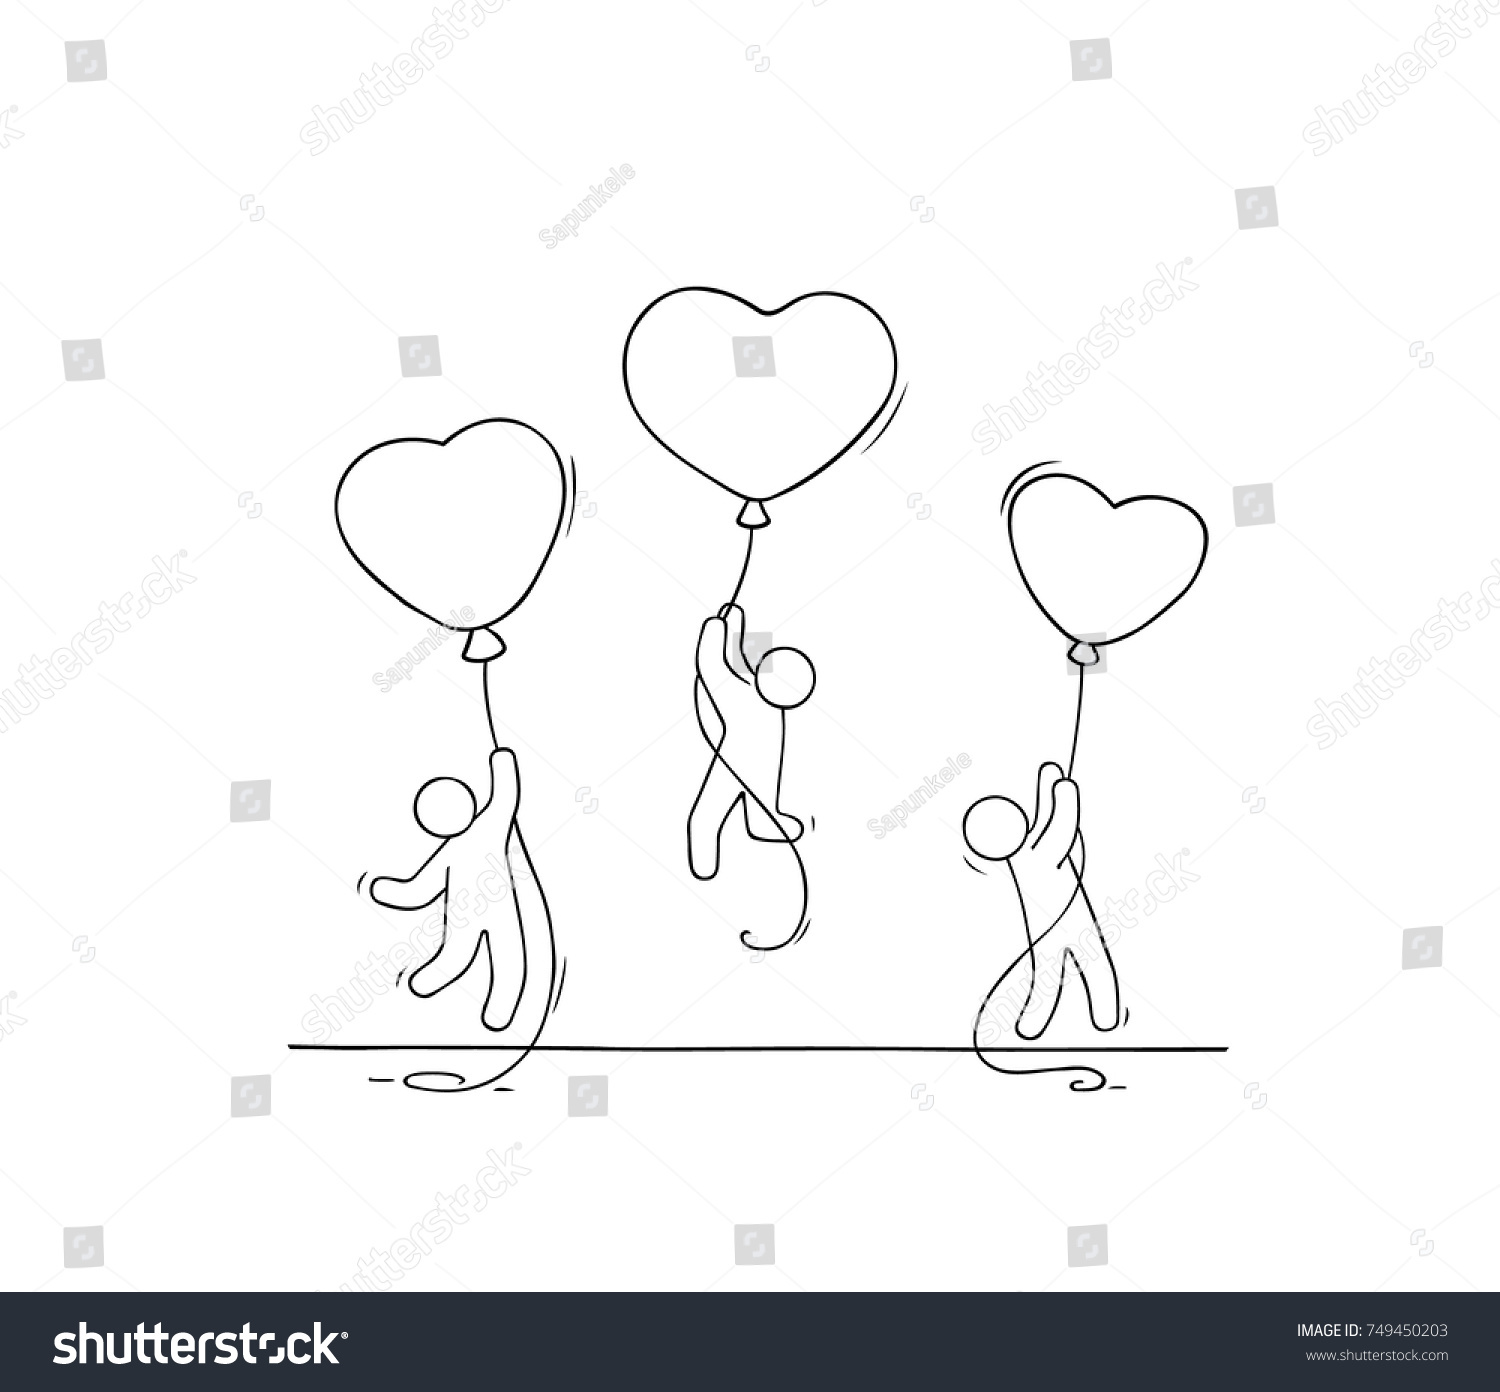 Sketch of working little people with romantic balloons doodle cute miniature scene of workers about